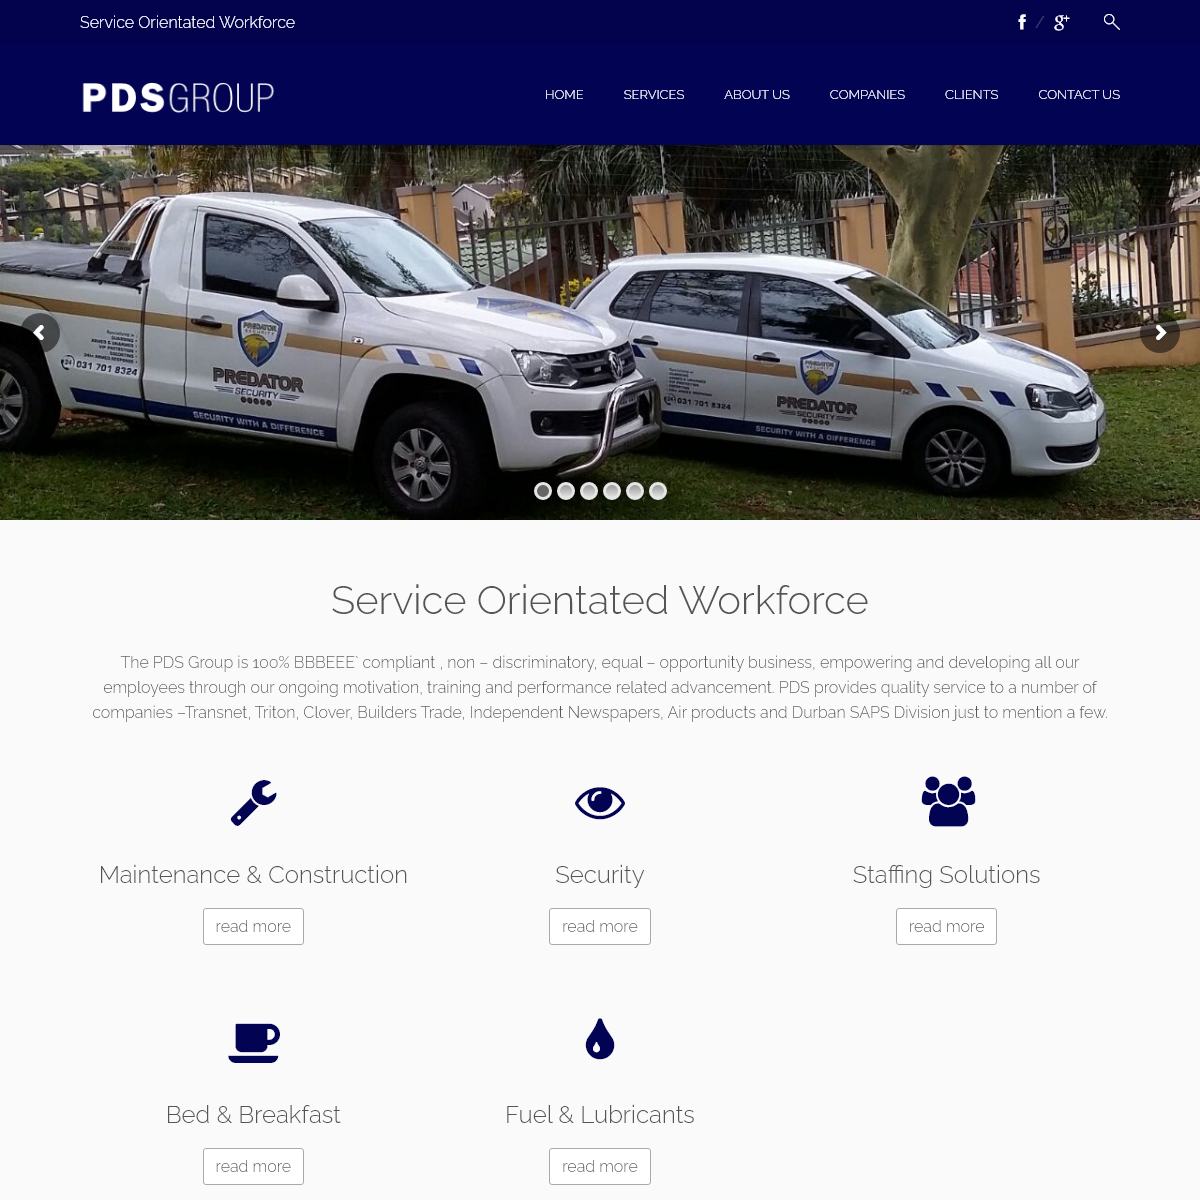 PDS Group - Staffing Solutions, Professional Distribution Services, PDS Training Centre and Riverside Palms Bed & Breakfast